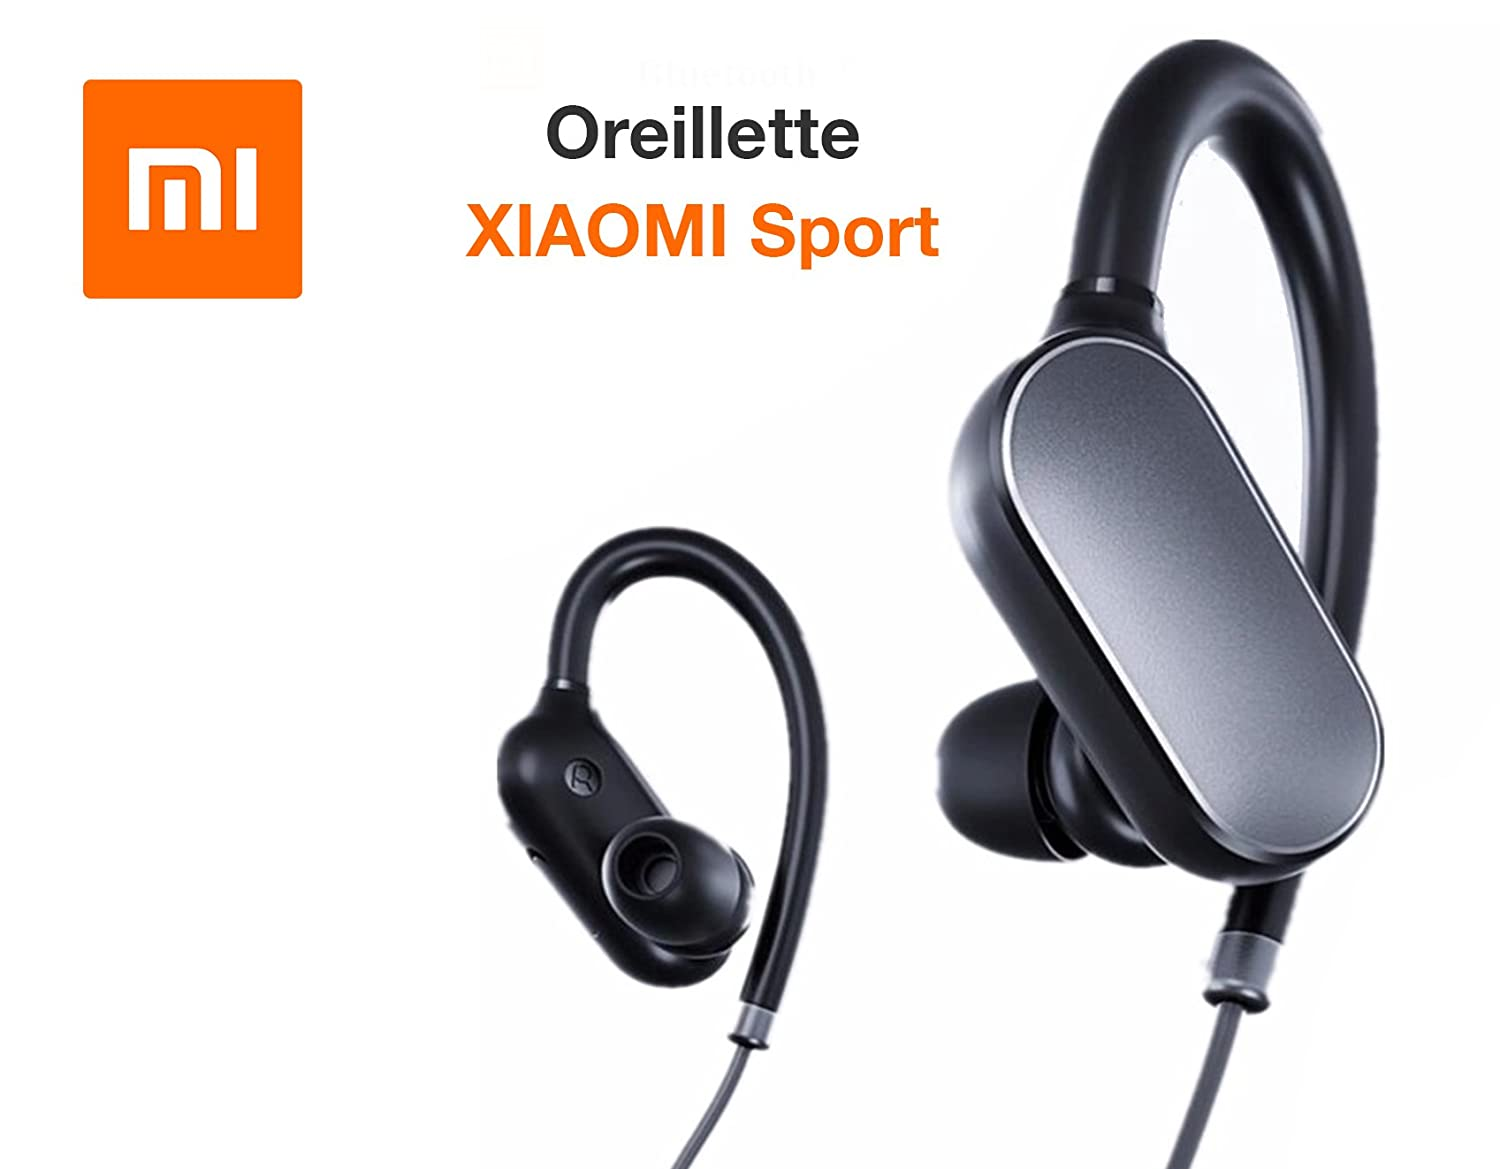 Cascos Inalambricos Xiaomi https://amzn.to/2On92tg